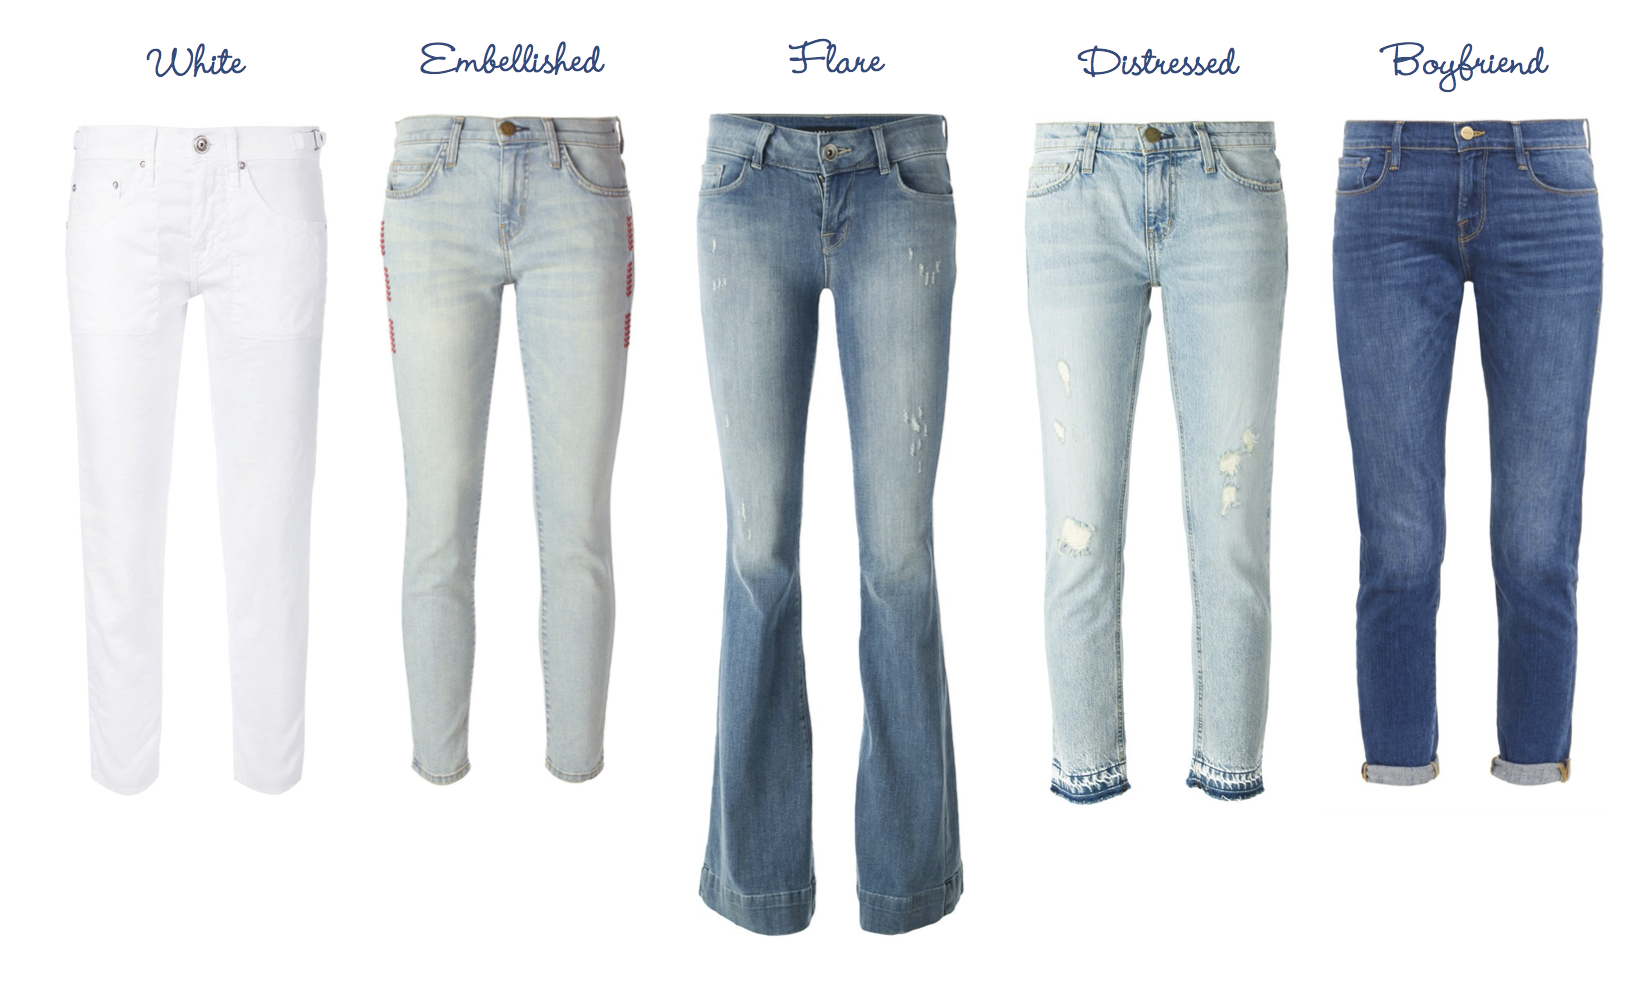 Strom Brand Painter Pant, Current/Elliott Embroidered Stiletto, J Brand Remy High-Rise Slim Boot, Current/Elliott Cropped Straight, Frame Denim Le Garçon